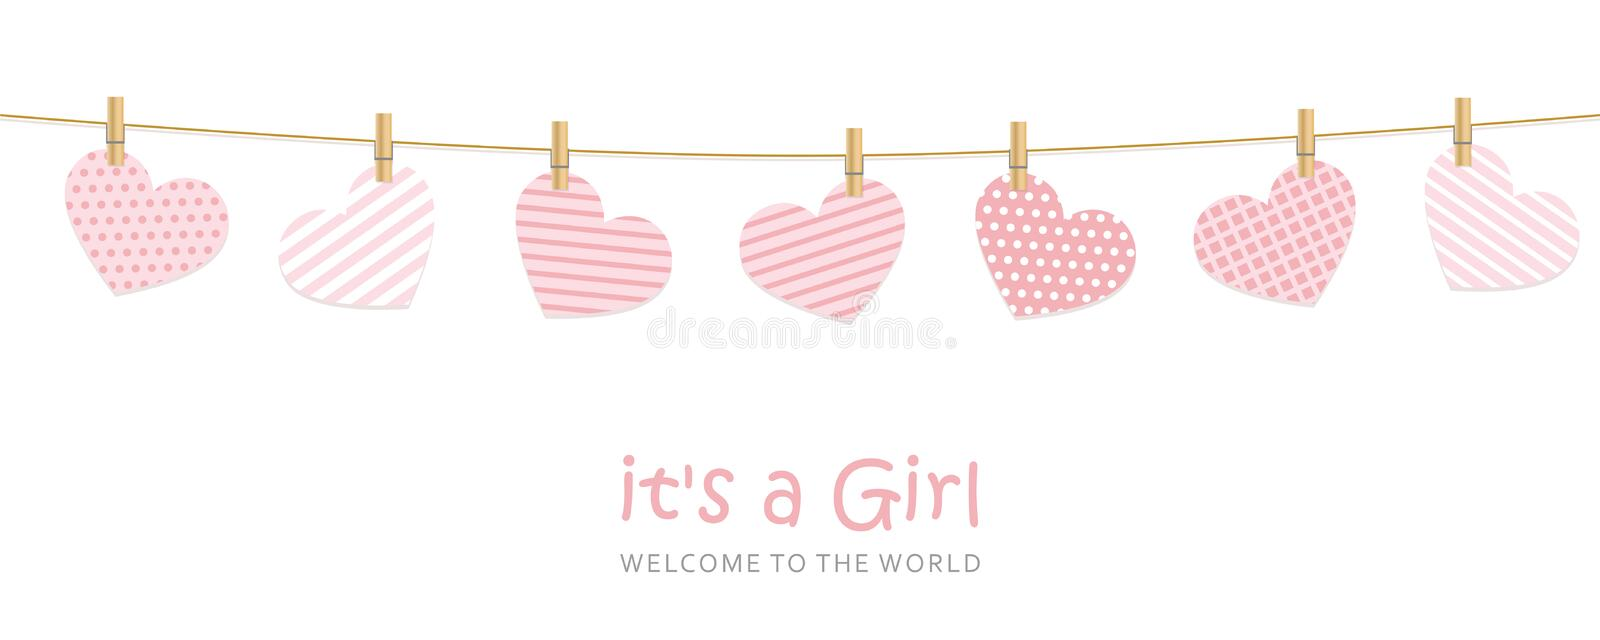 Its a girl welcome greeting card for childbirth. Vector illustration EPS10 royalty free illustration